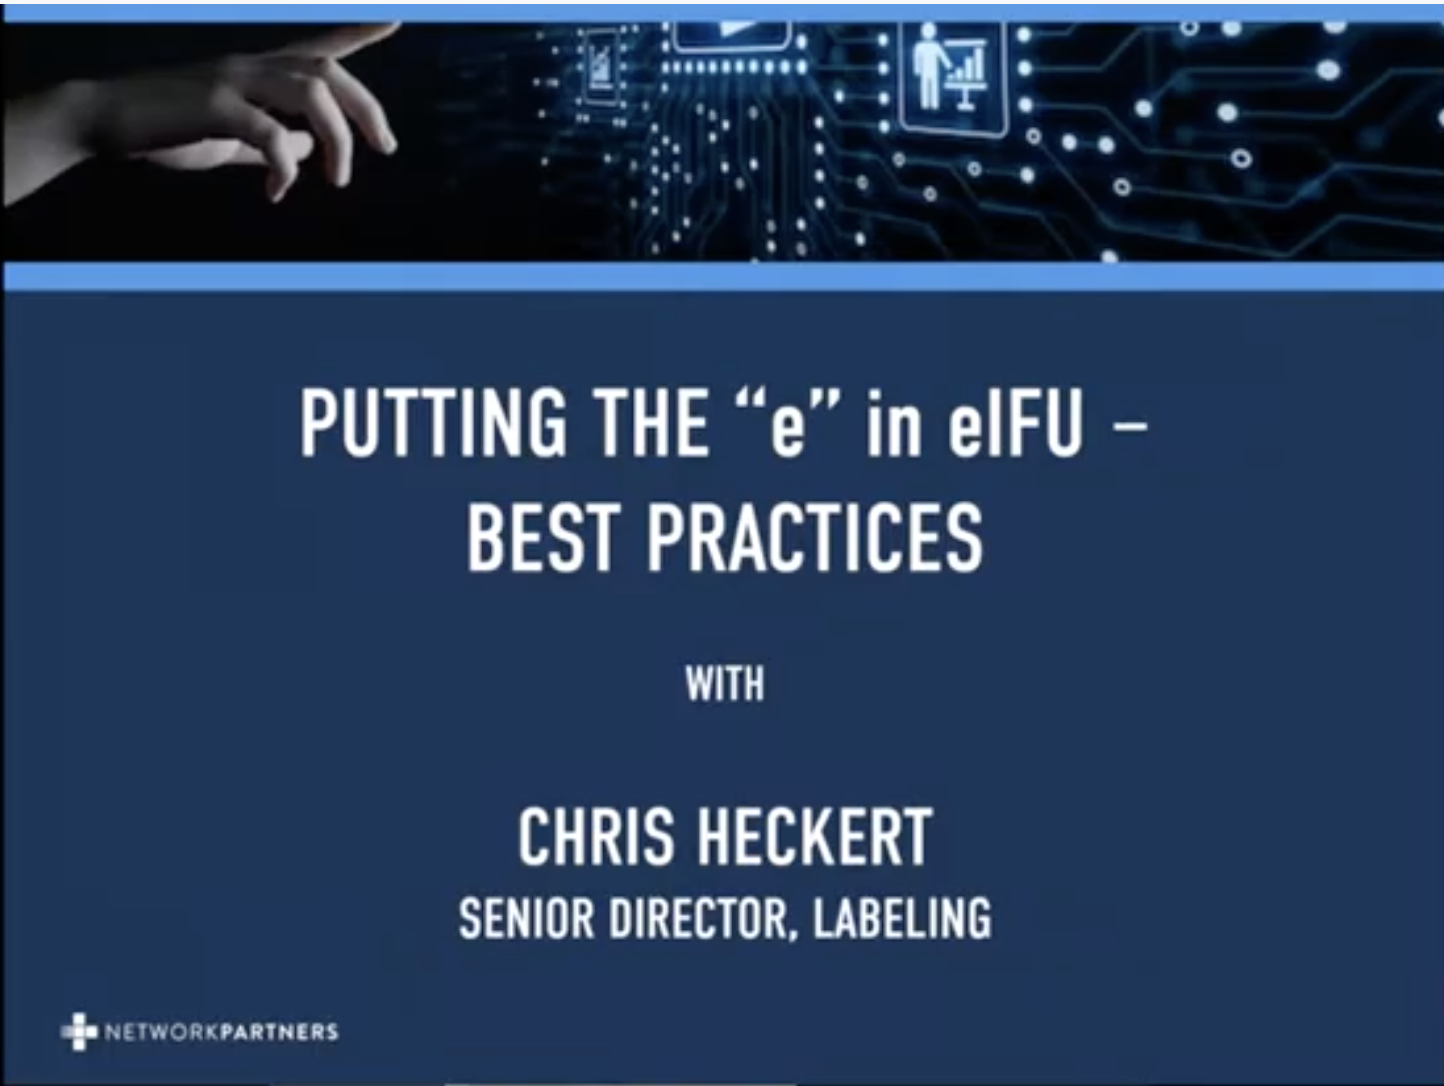 Putting the e in eIFUs - Best Practices thumbnail